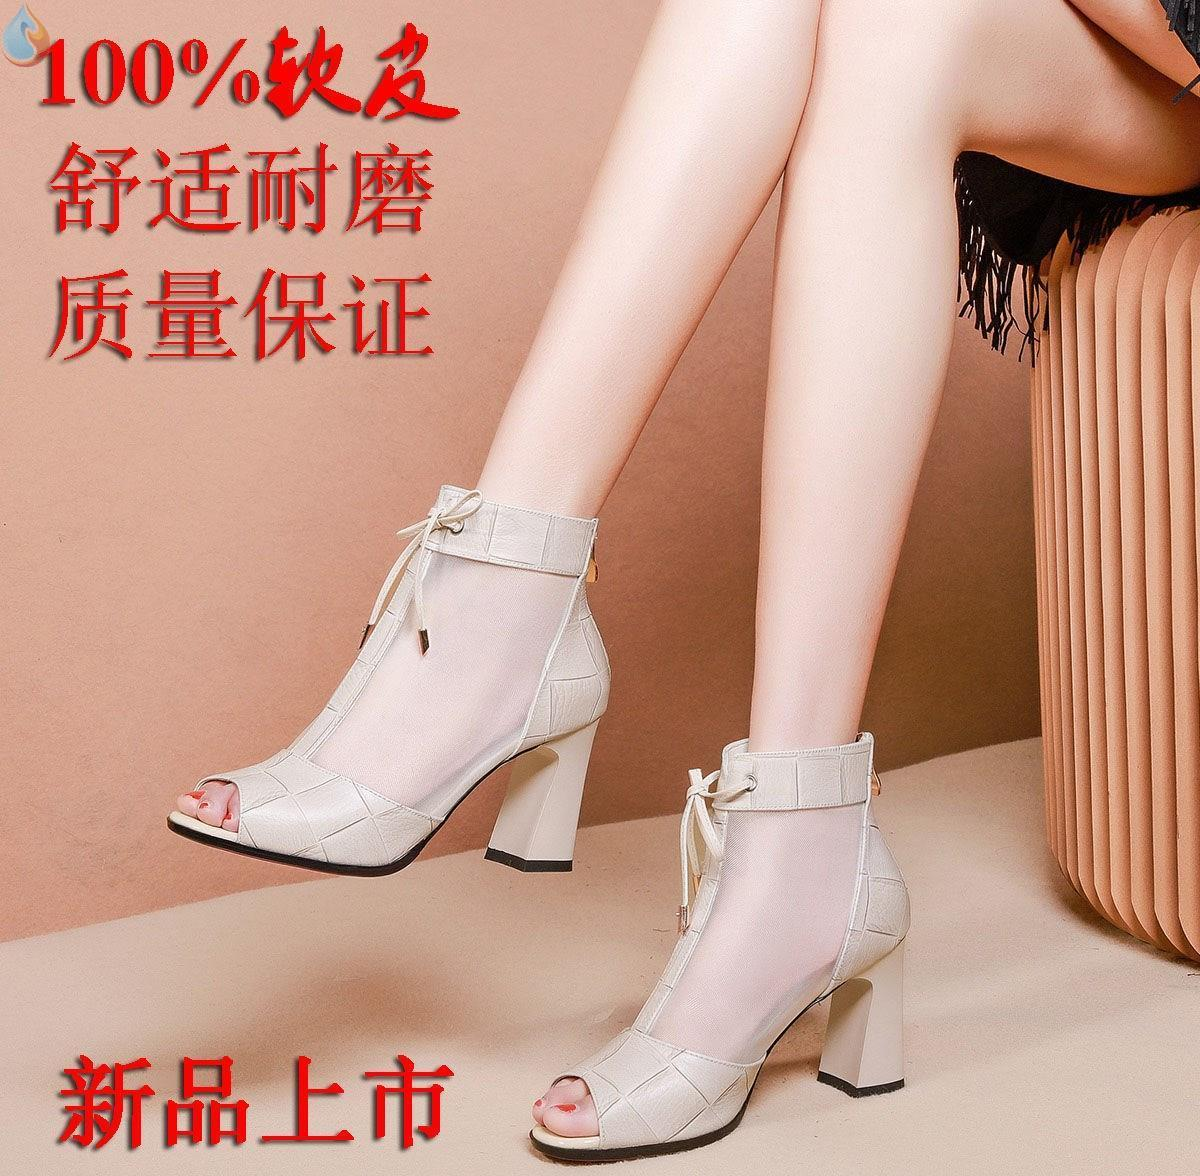 ? 2020 new fish mouth sandals womens mesh pointed cool boots thick heel hollowed out casual tennis boots high heel cool boots